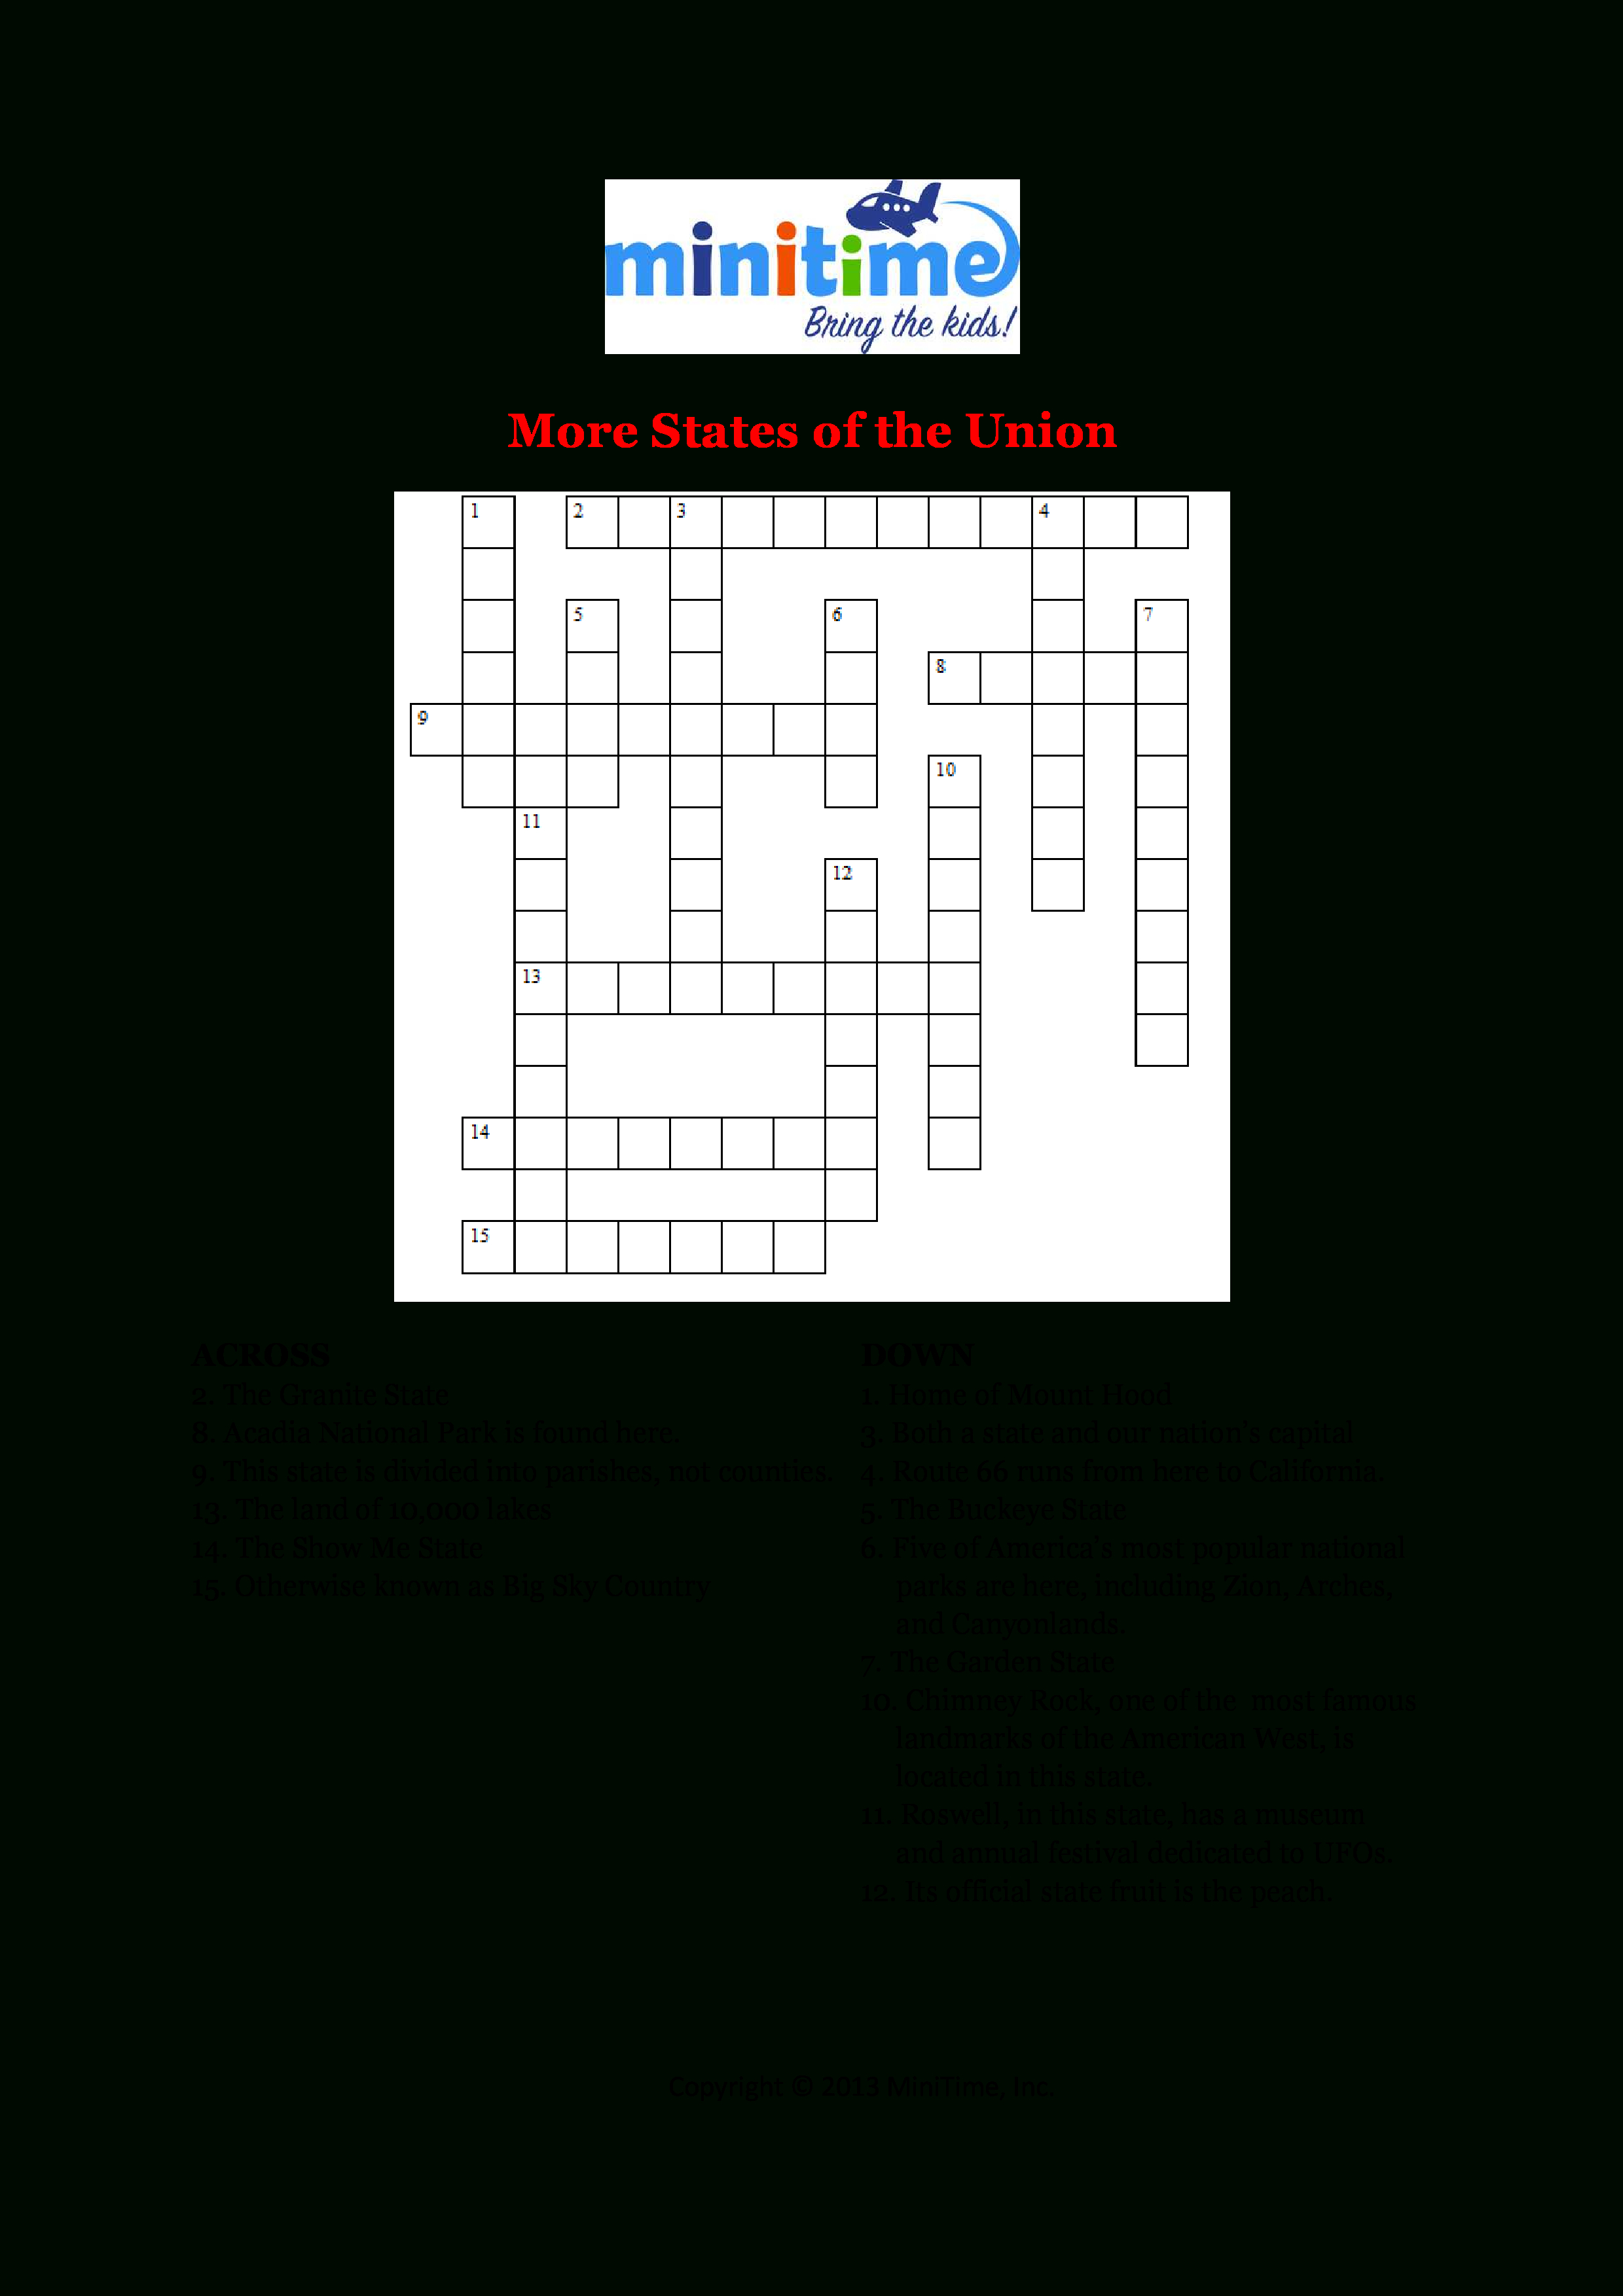 Us States Fun Facts Crossword Puzzles | Free Printable Travel - Printable Crossword Puzzles In Italian